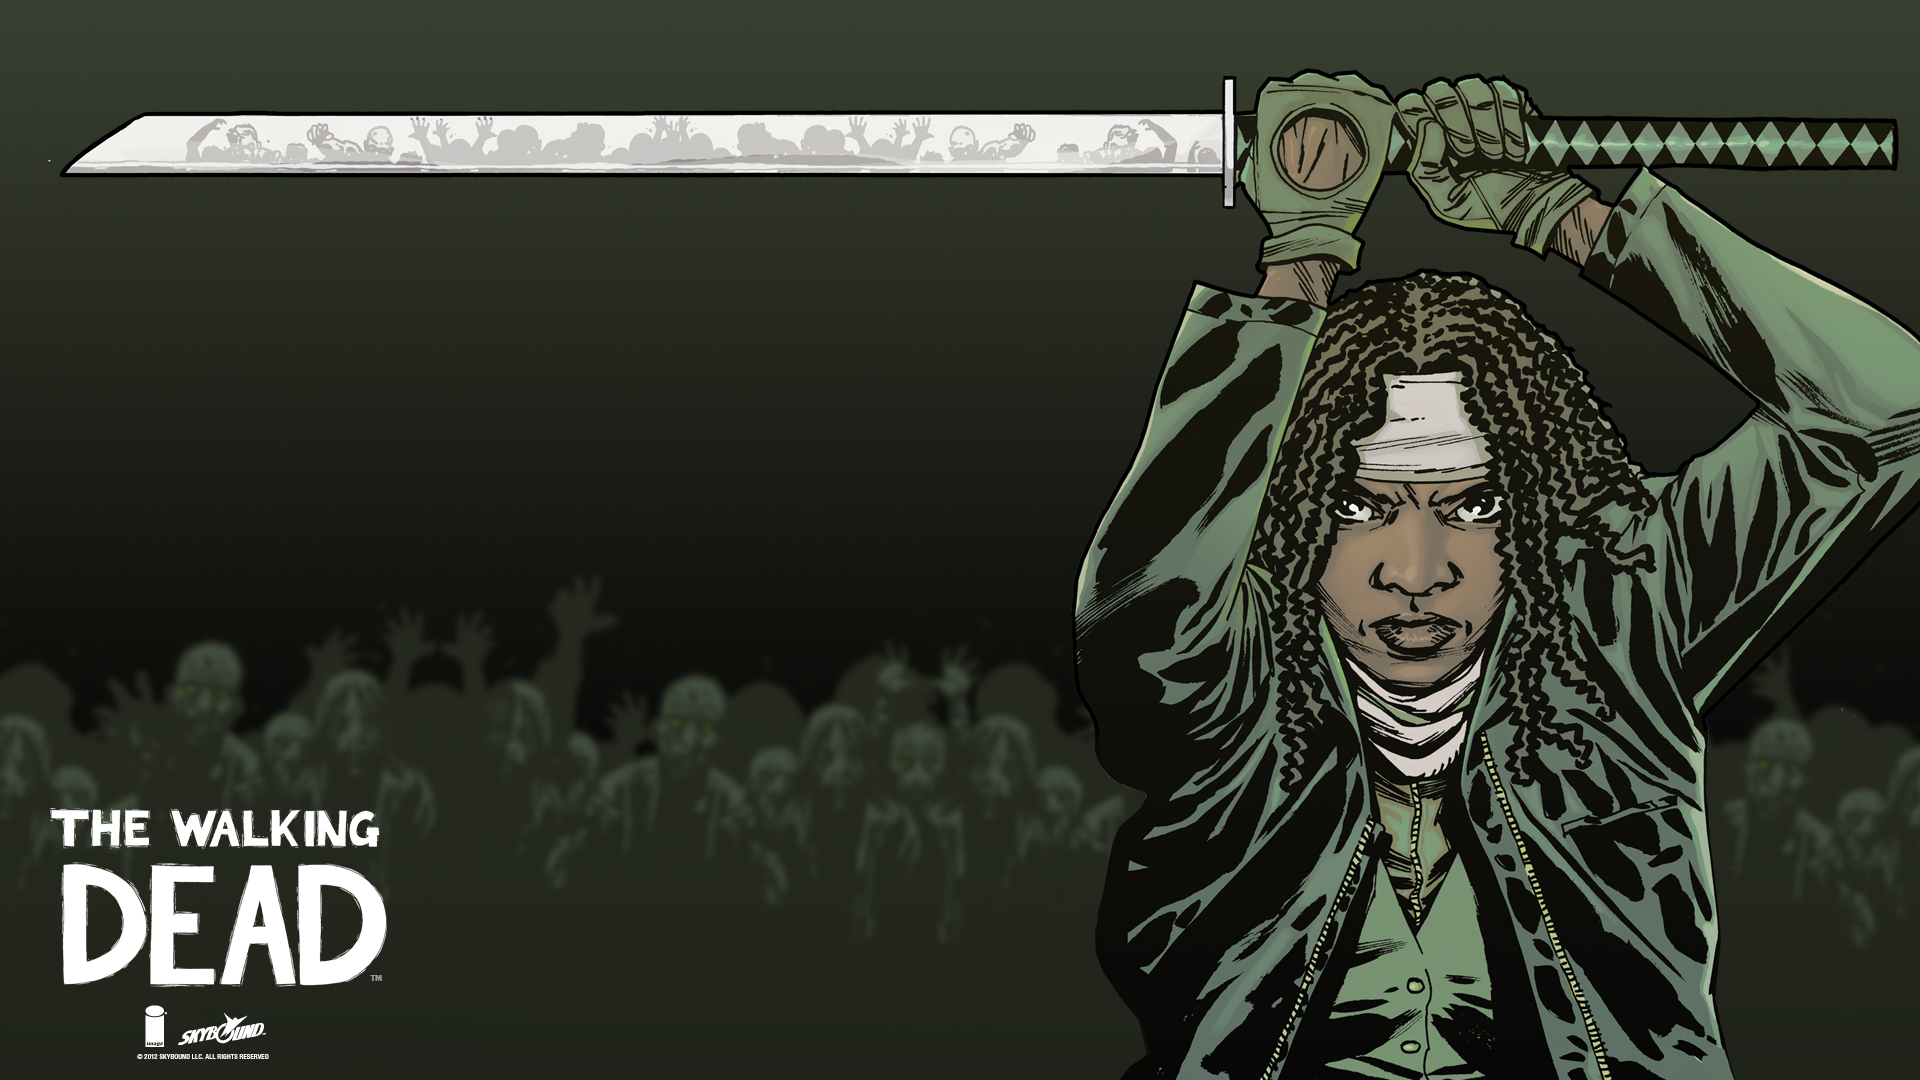 The Walking Dead 1920x1080 Posted By Michelle Mercado